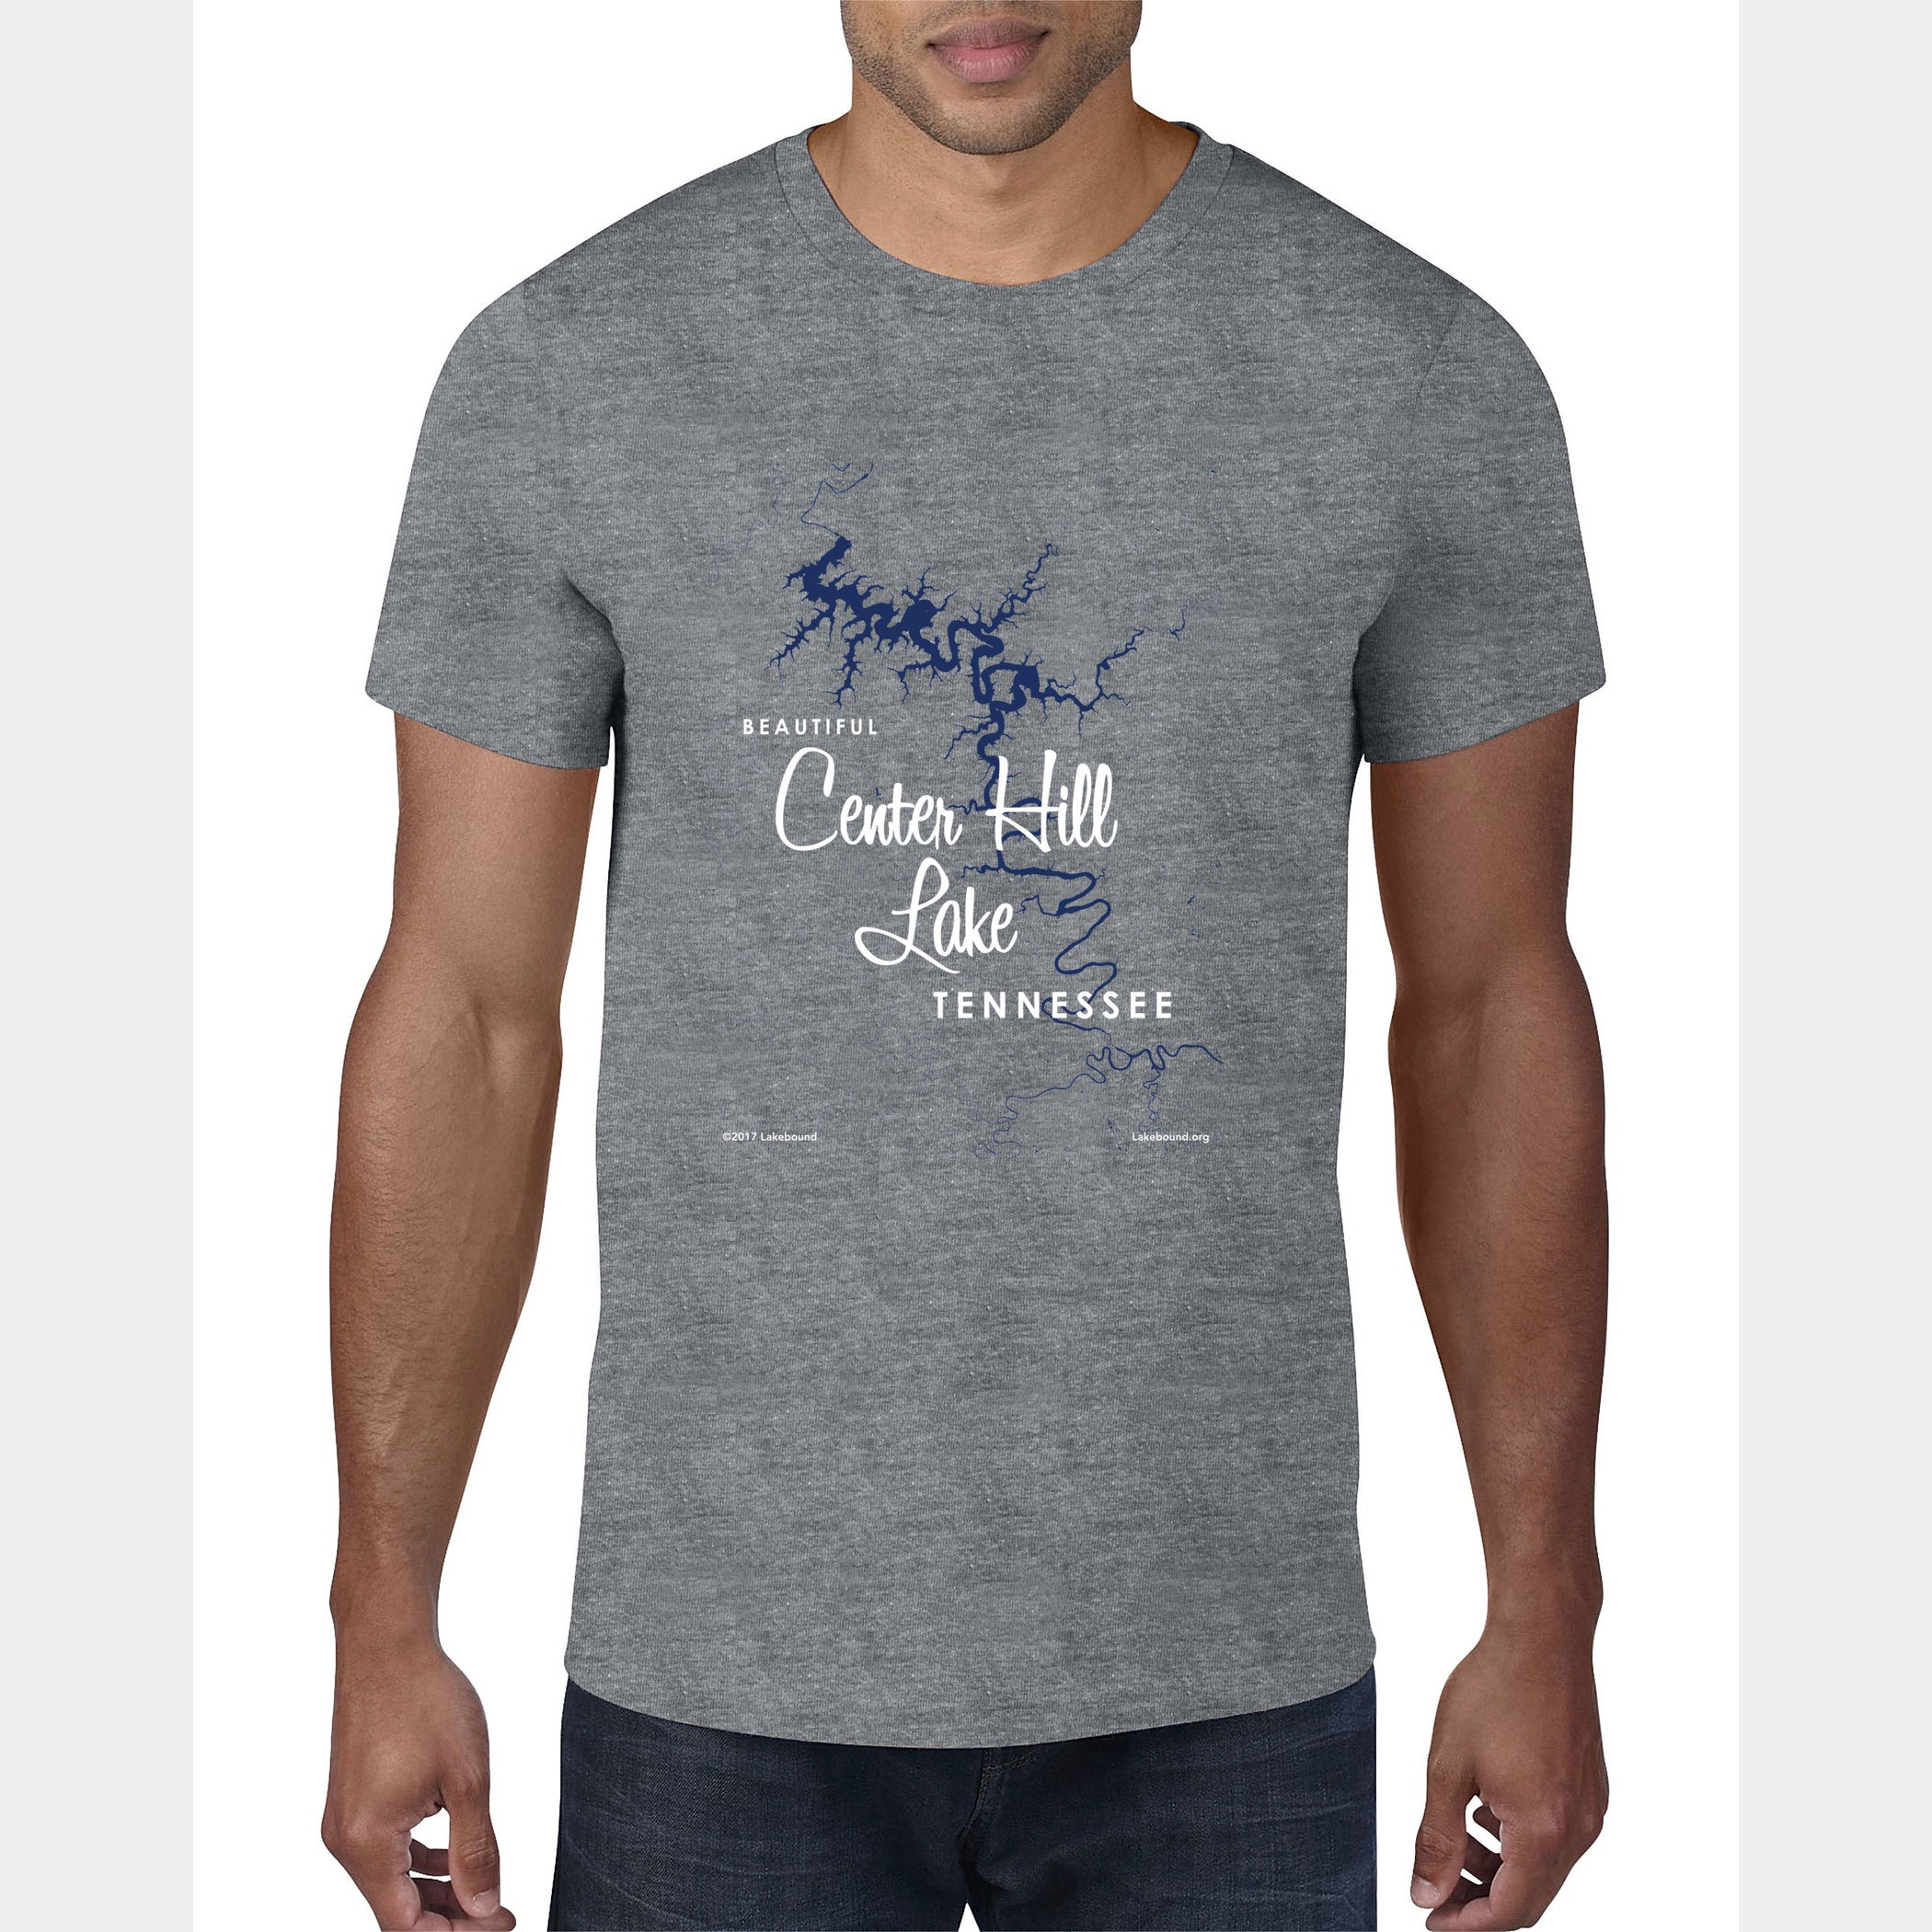 Center Hill Lake, Tennessee, T-Shirt